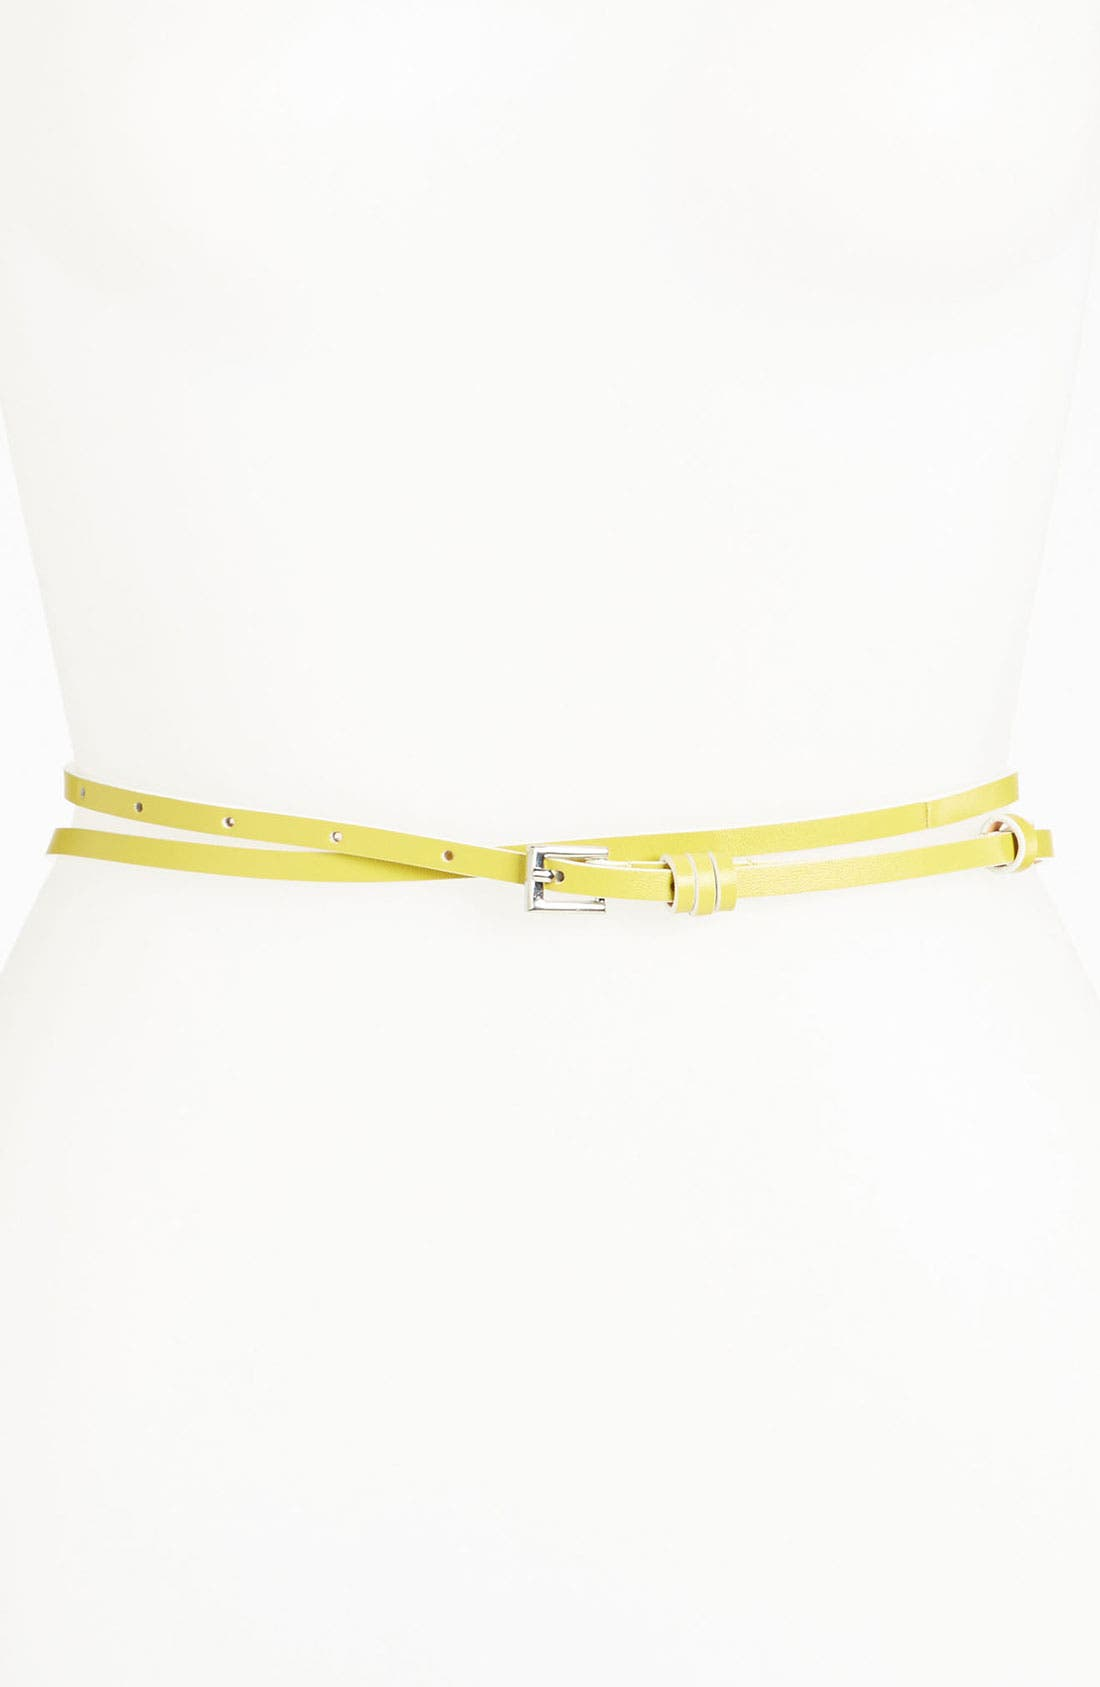 Alternate Image 1 Selected - Lafayette 148 New York Double Wrap Belt (Online Exclusive)